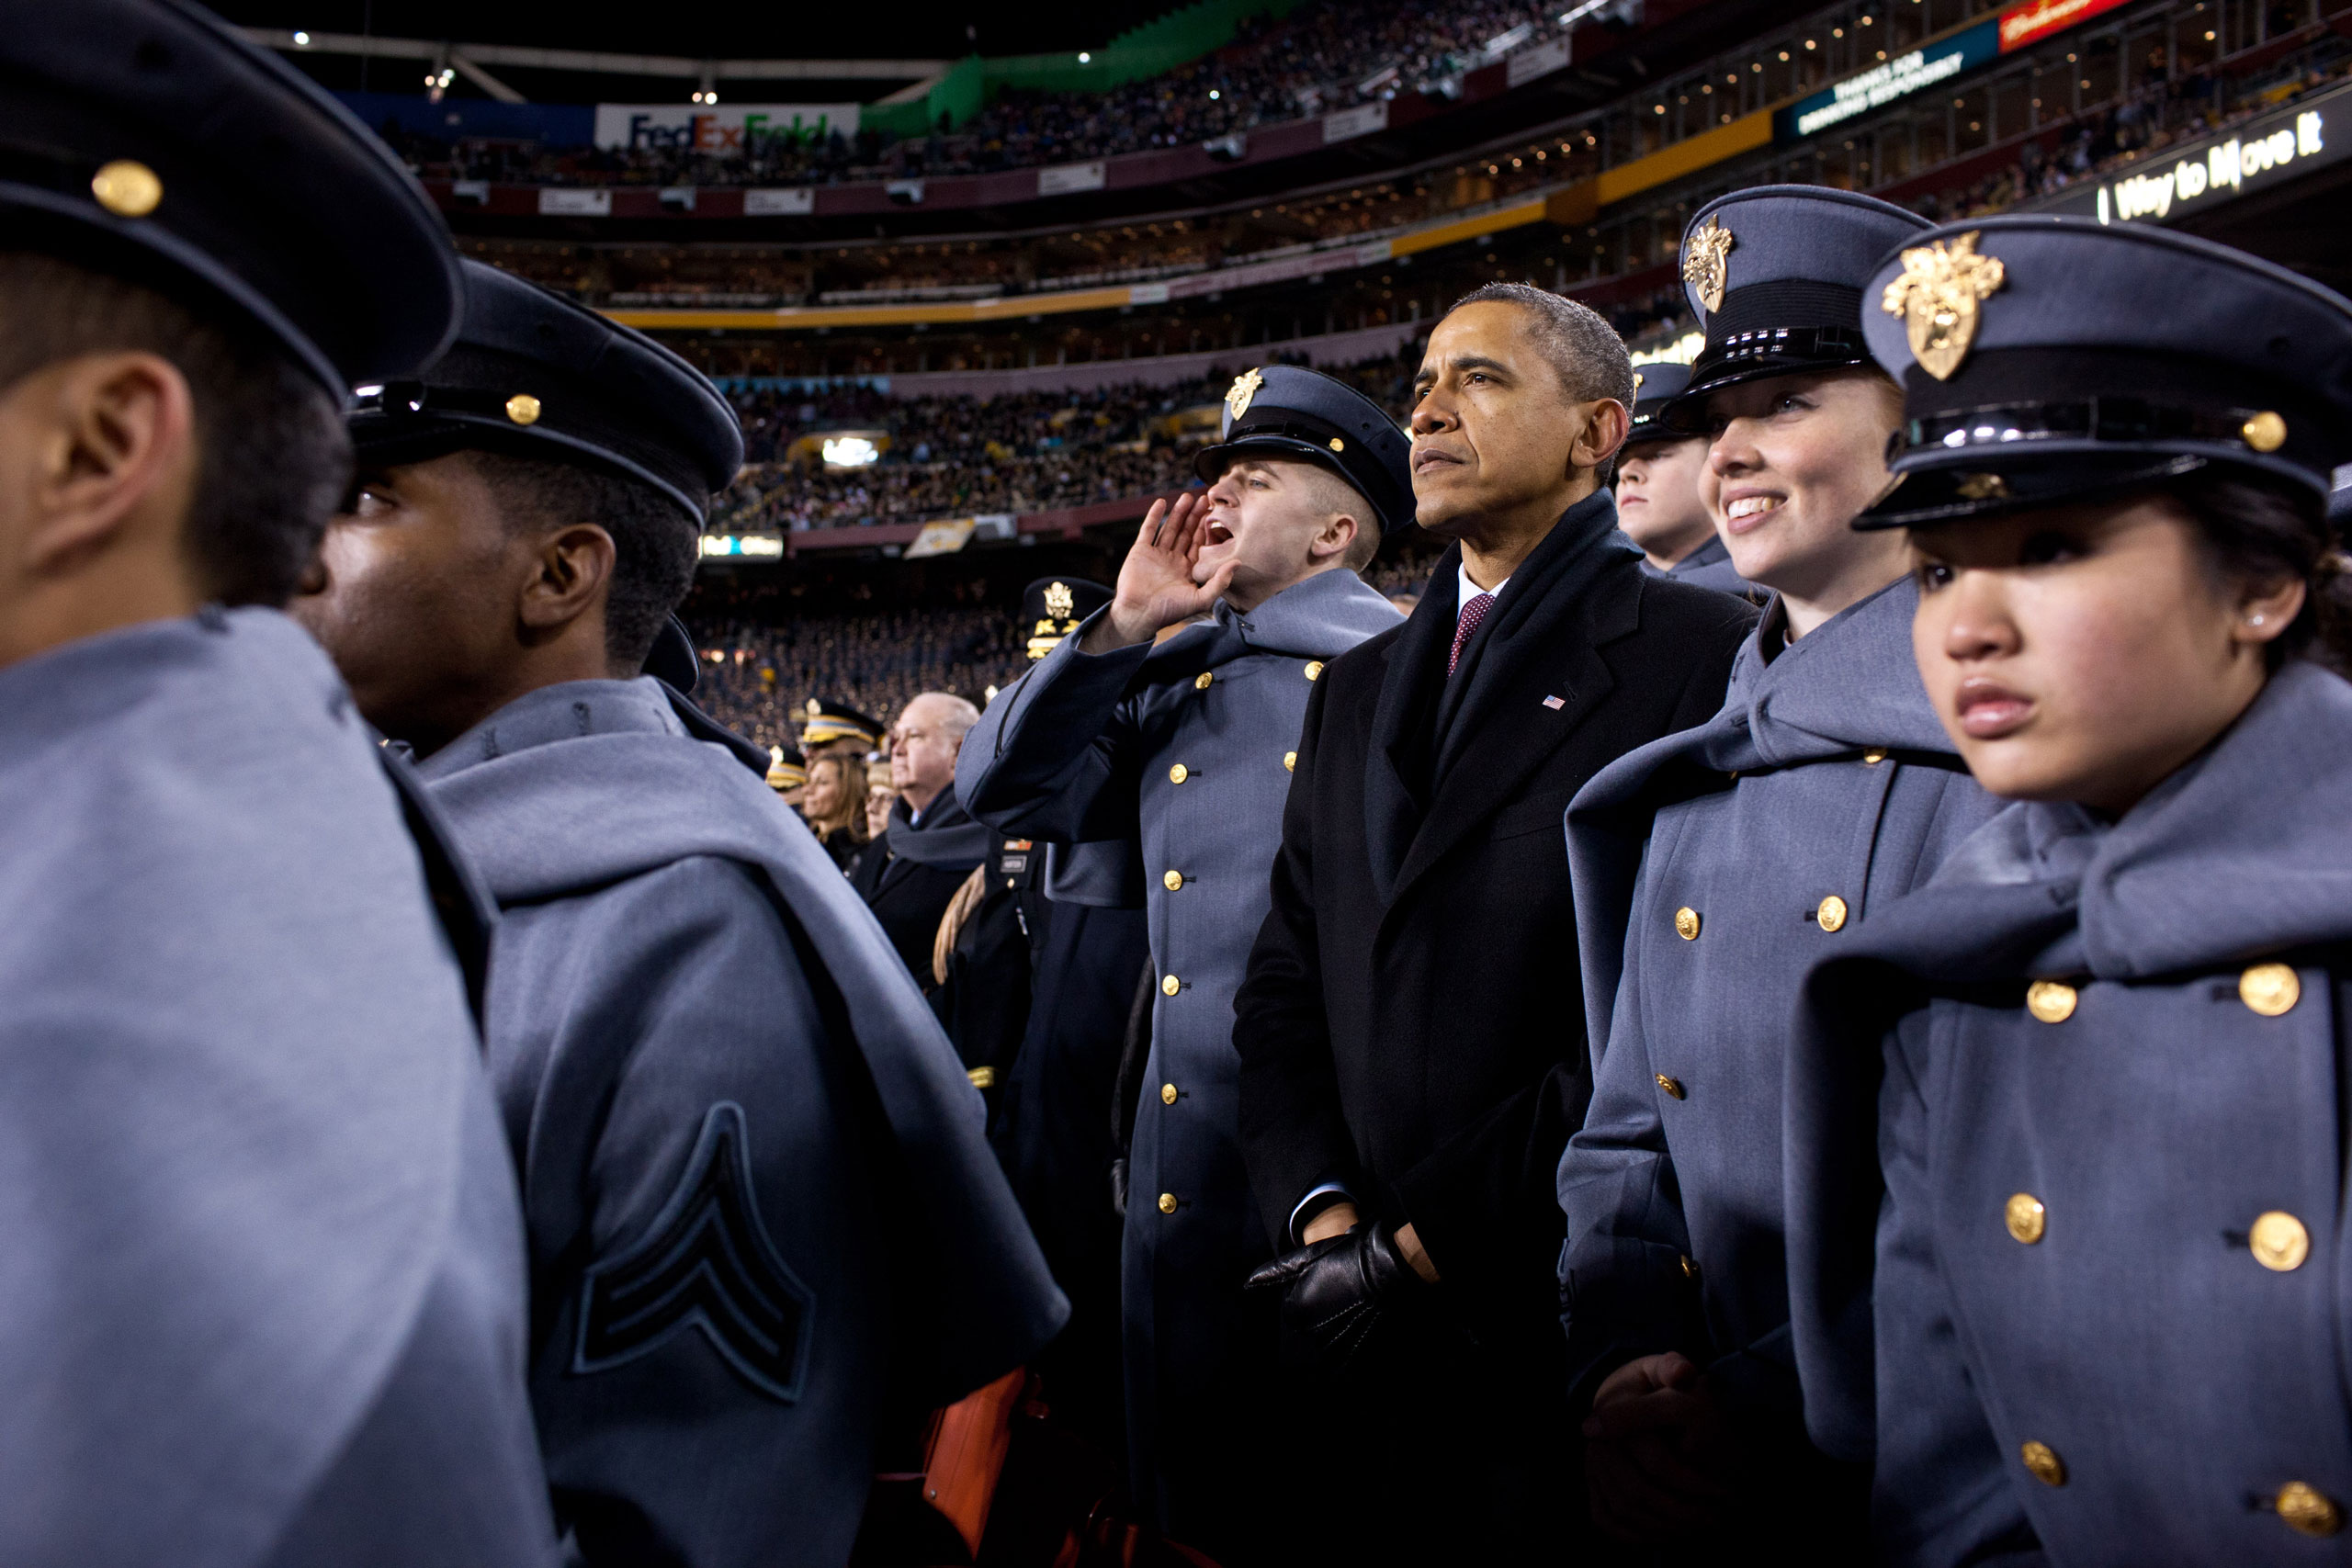 Attending the annual Army vs. Navy football game at FedEx Field outside Washington, the President spent part of the first half watching the game with Midshipmen from the Naval Academy. During the second half, he crossed the field and watched with Cadets from the U.S. Military Academy (pictured here), Dec. 10, 2011.